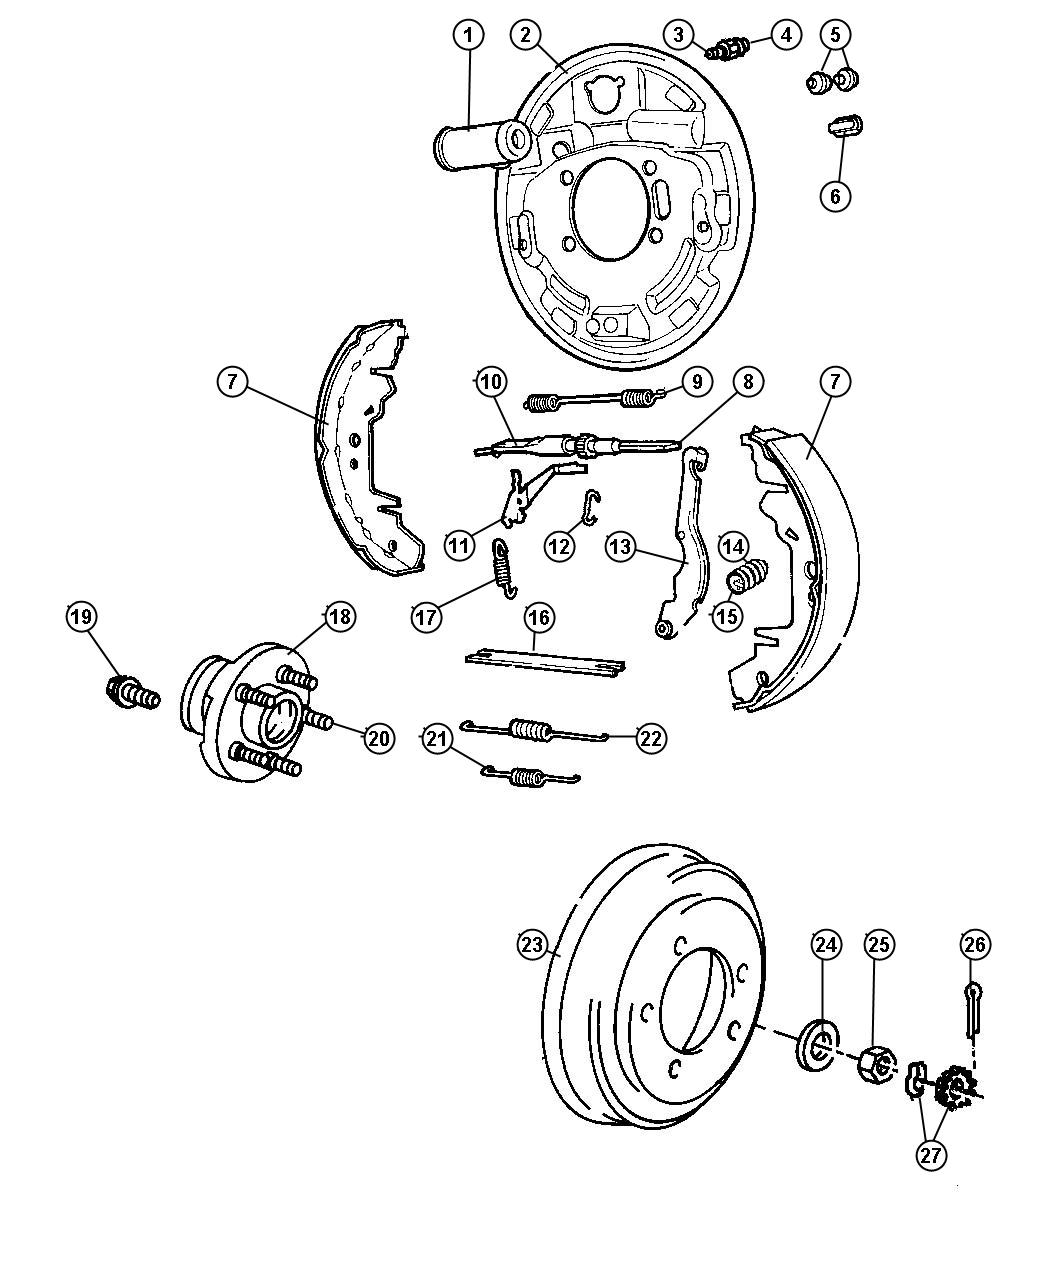 Plymouth Brakes Diagram Auto Electrical Wiring